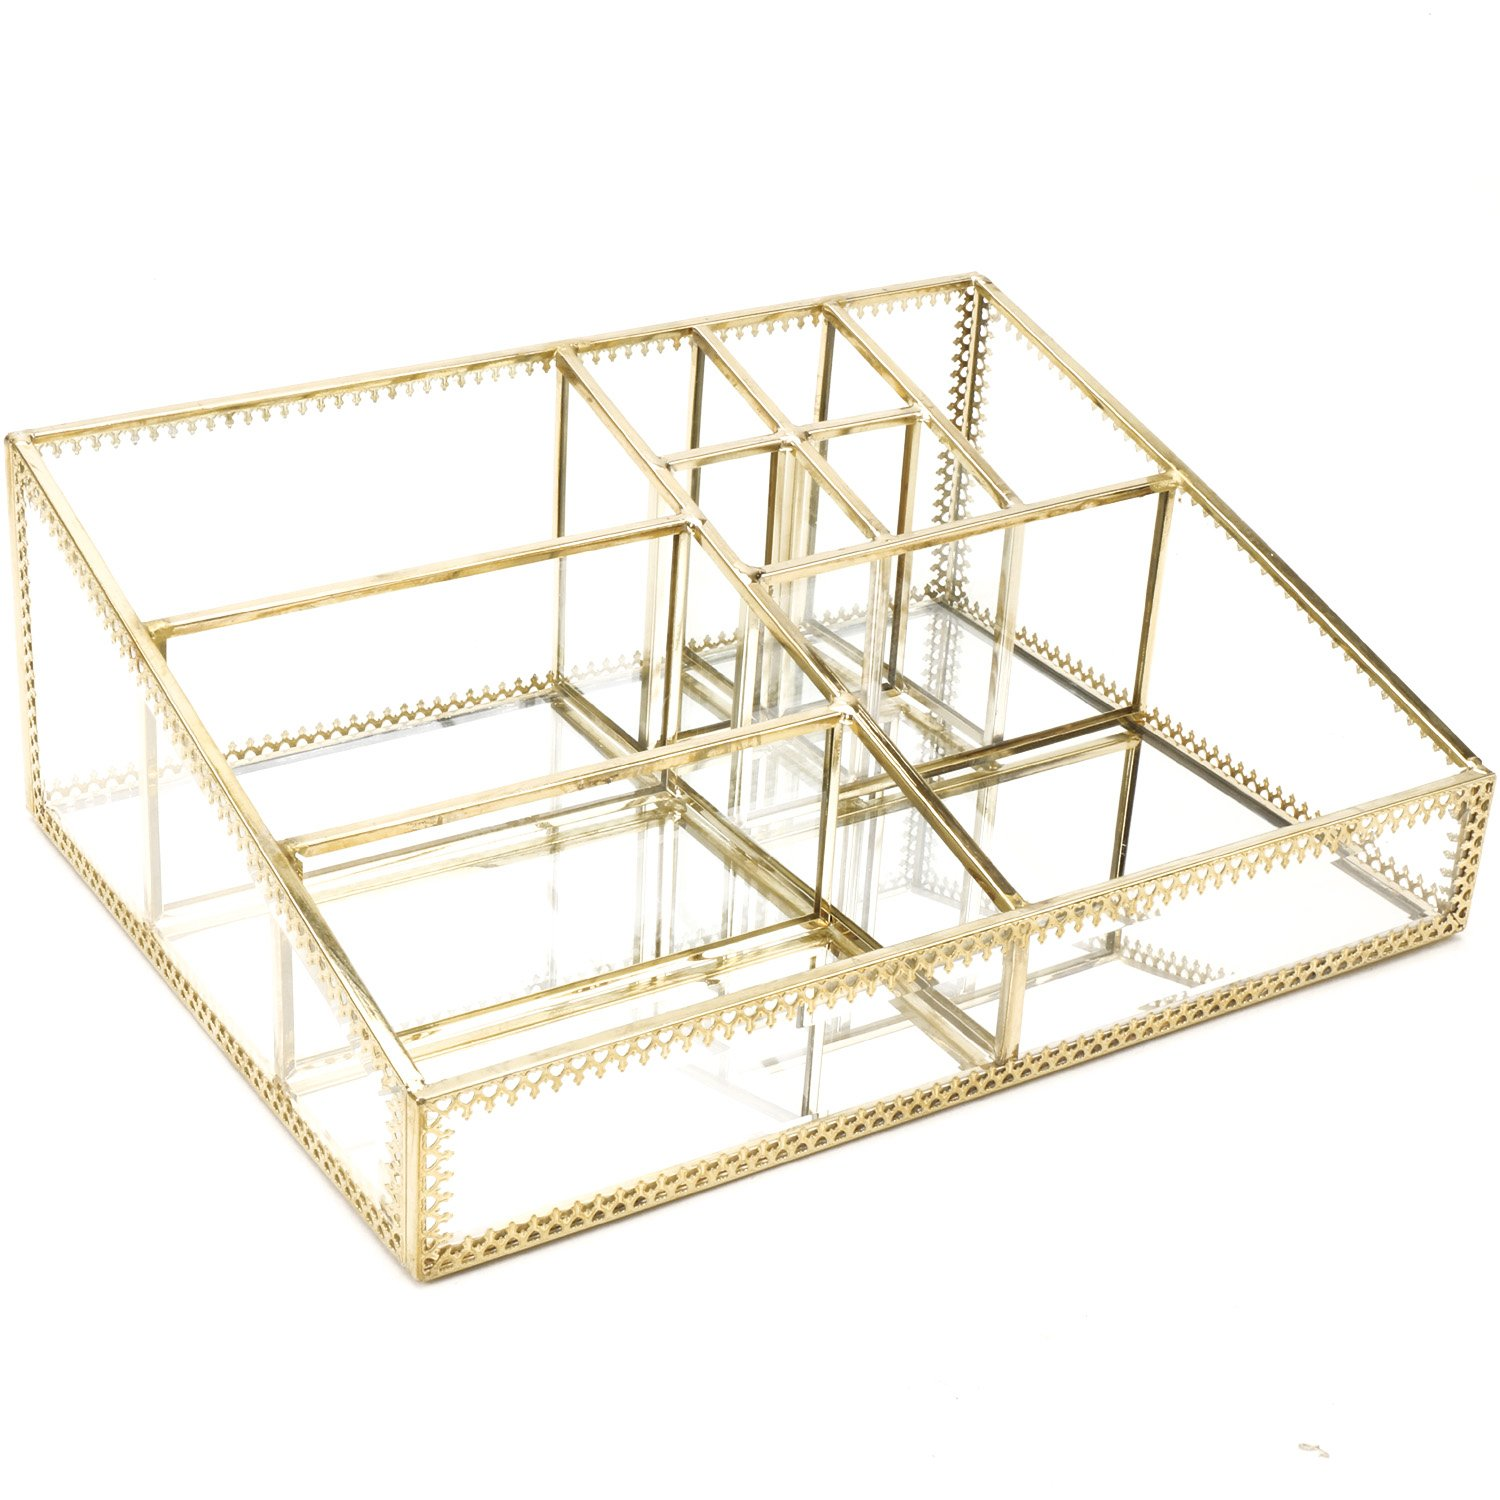 Hersoo Gold Mirrored Vanity Tray Glass Makeup Display Organizer Dresser Comestic Storage For Palette Lipstick Brushes Skincare Perfumes Bathroom Accessories Buy Online In Dominica At Dominica Desertcart Com Productid 59291339